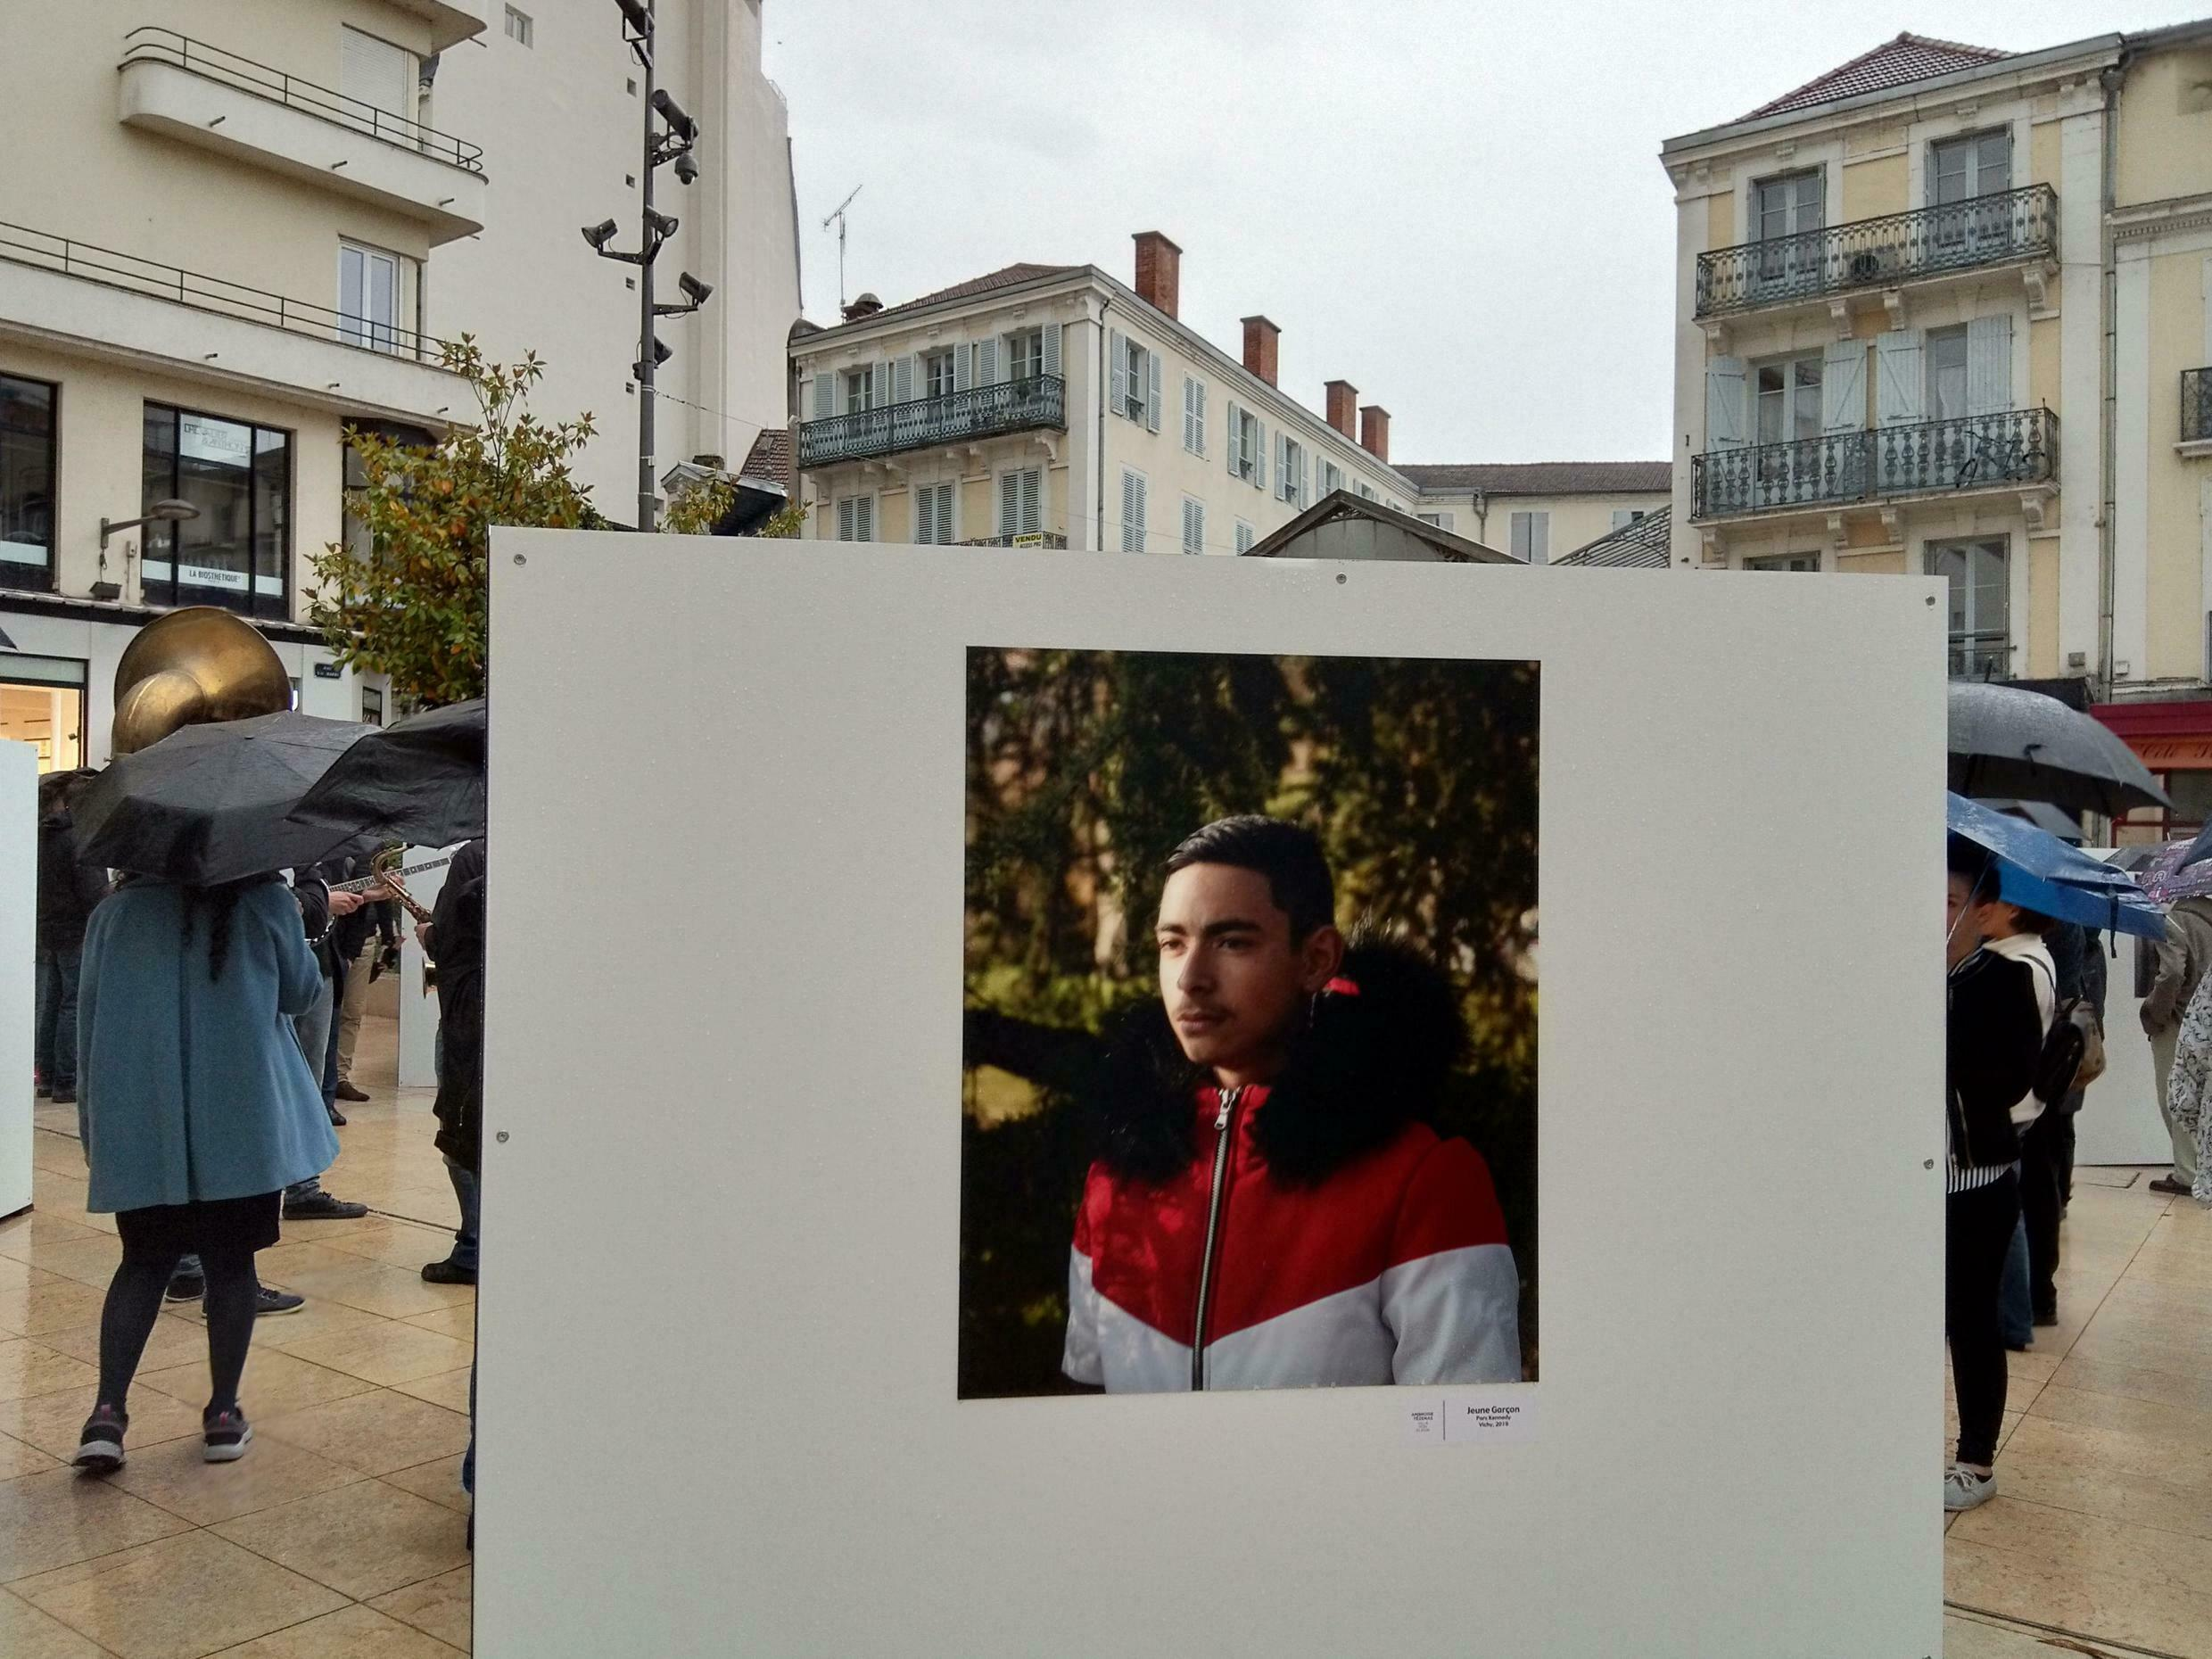 Portrait of a young man from Vichy in Ambroise Tézenas' exhibition in the Portrait(s) Festival, June 2019, Vichy, France